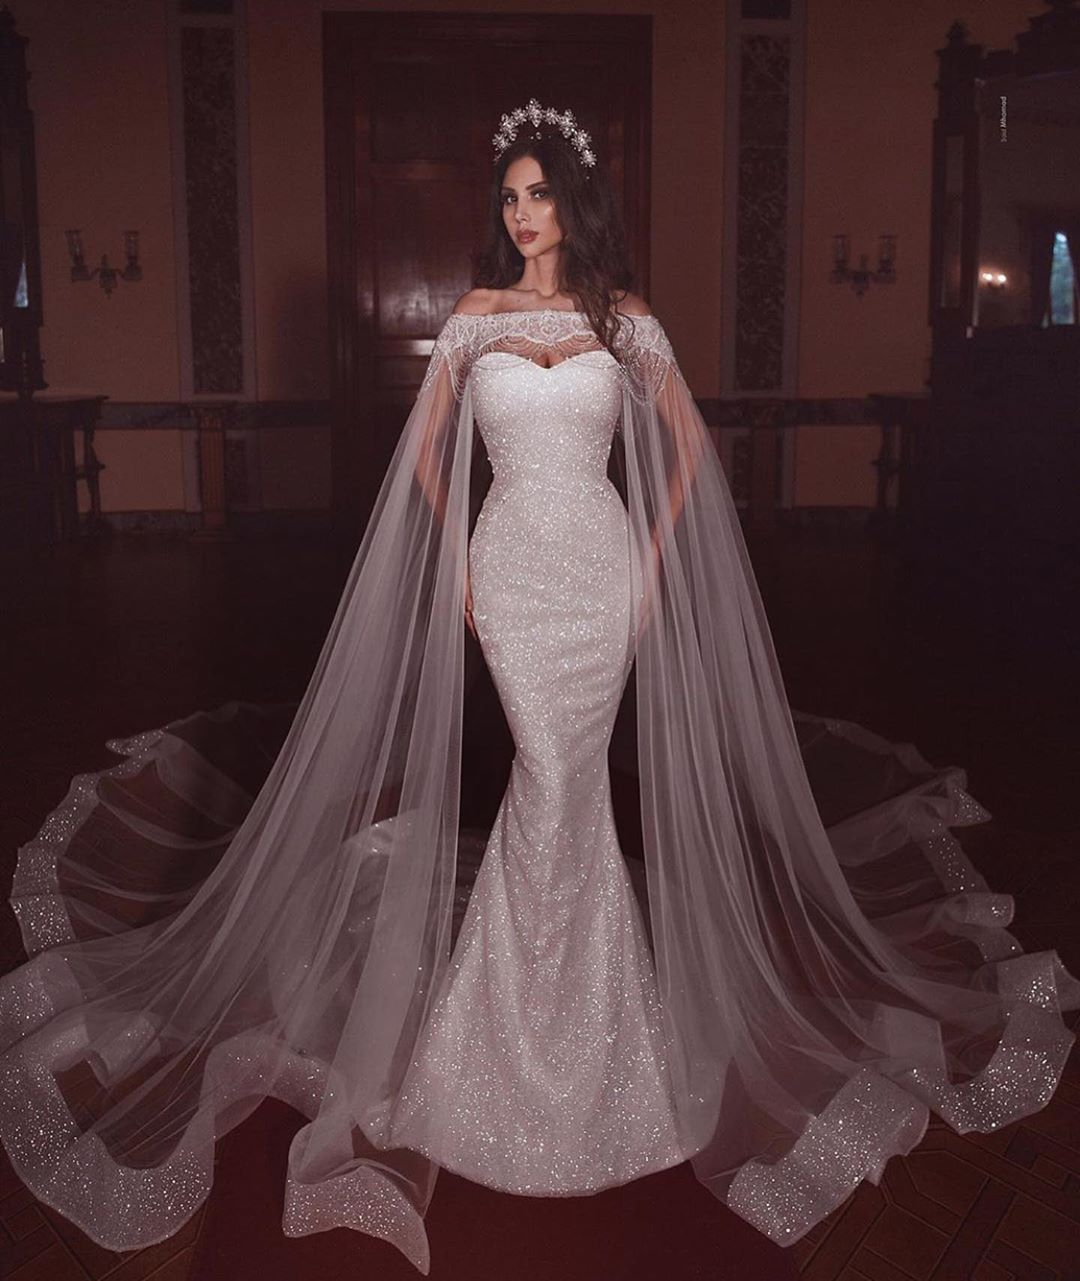 White Glitter Sequins Mermaid Wedding Dress With Long Veil Sweetheart Beading Court Train Plus Size Sparkly Women Bridal Gowns